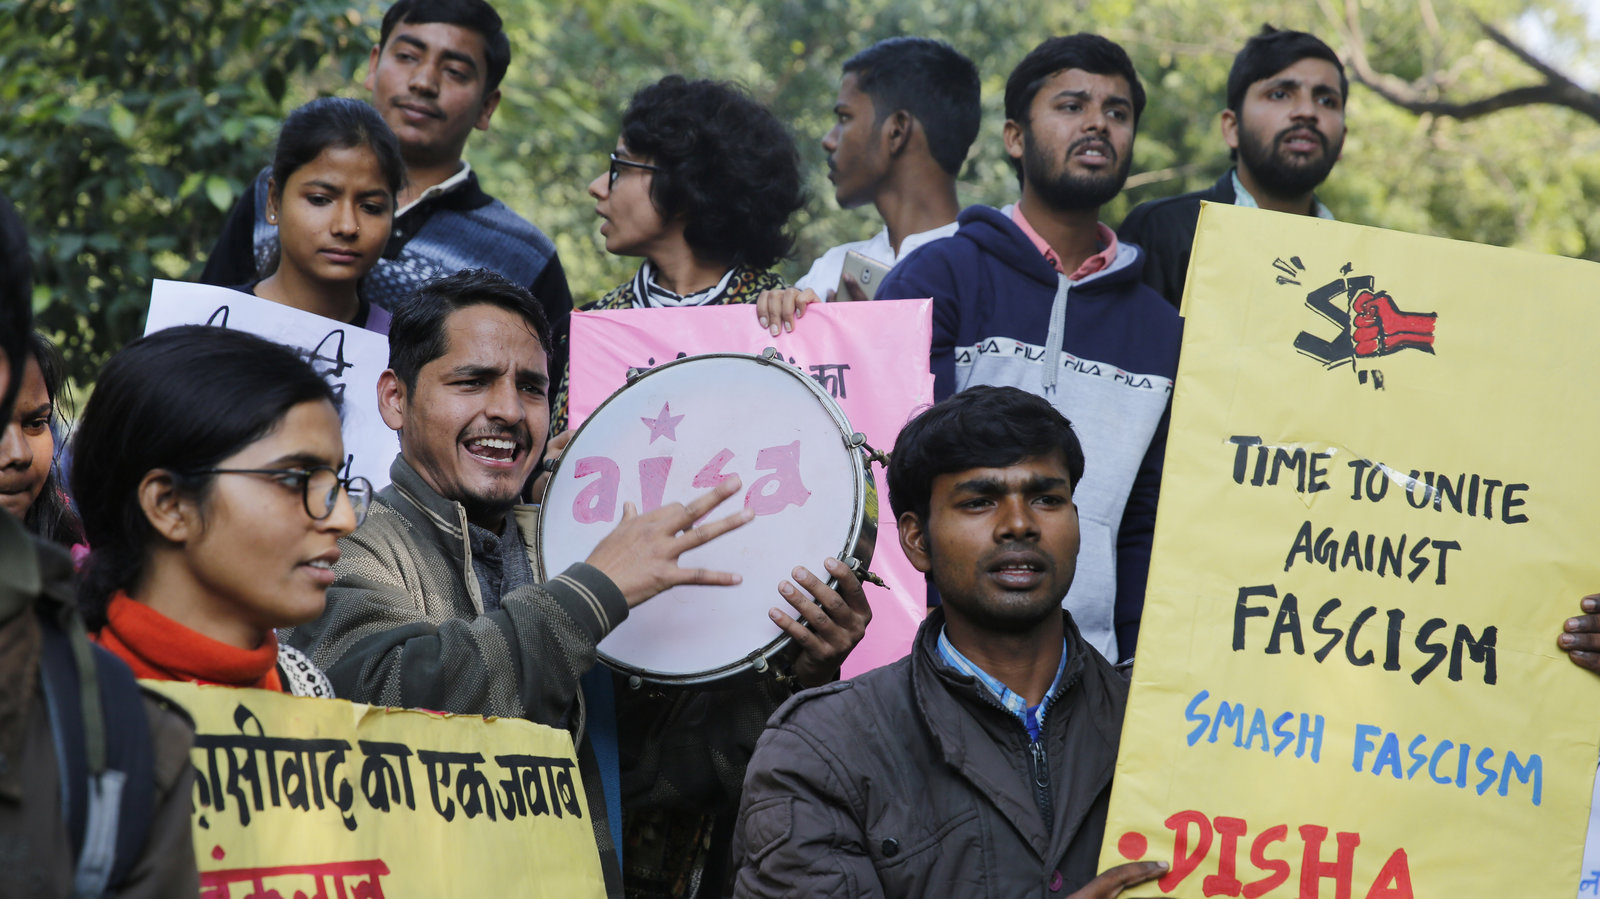 Students In India Protest After University Attacked By Masked Assailants